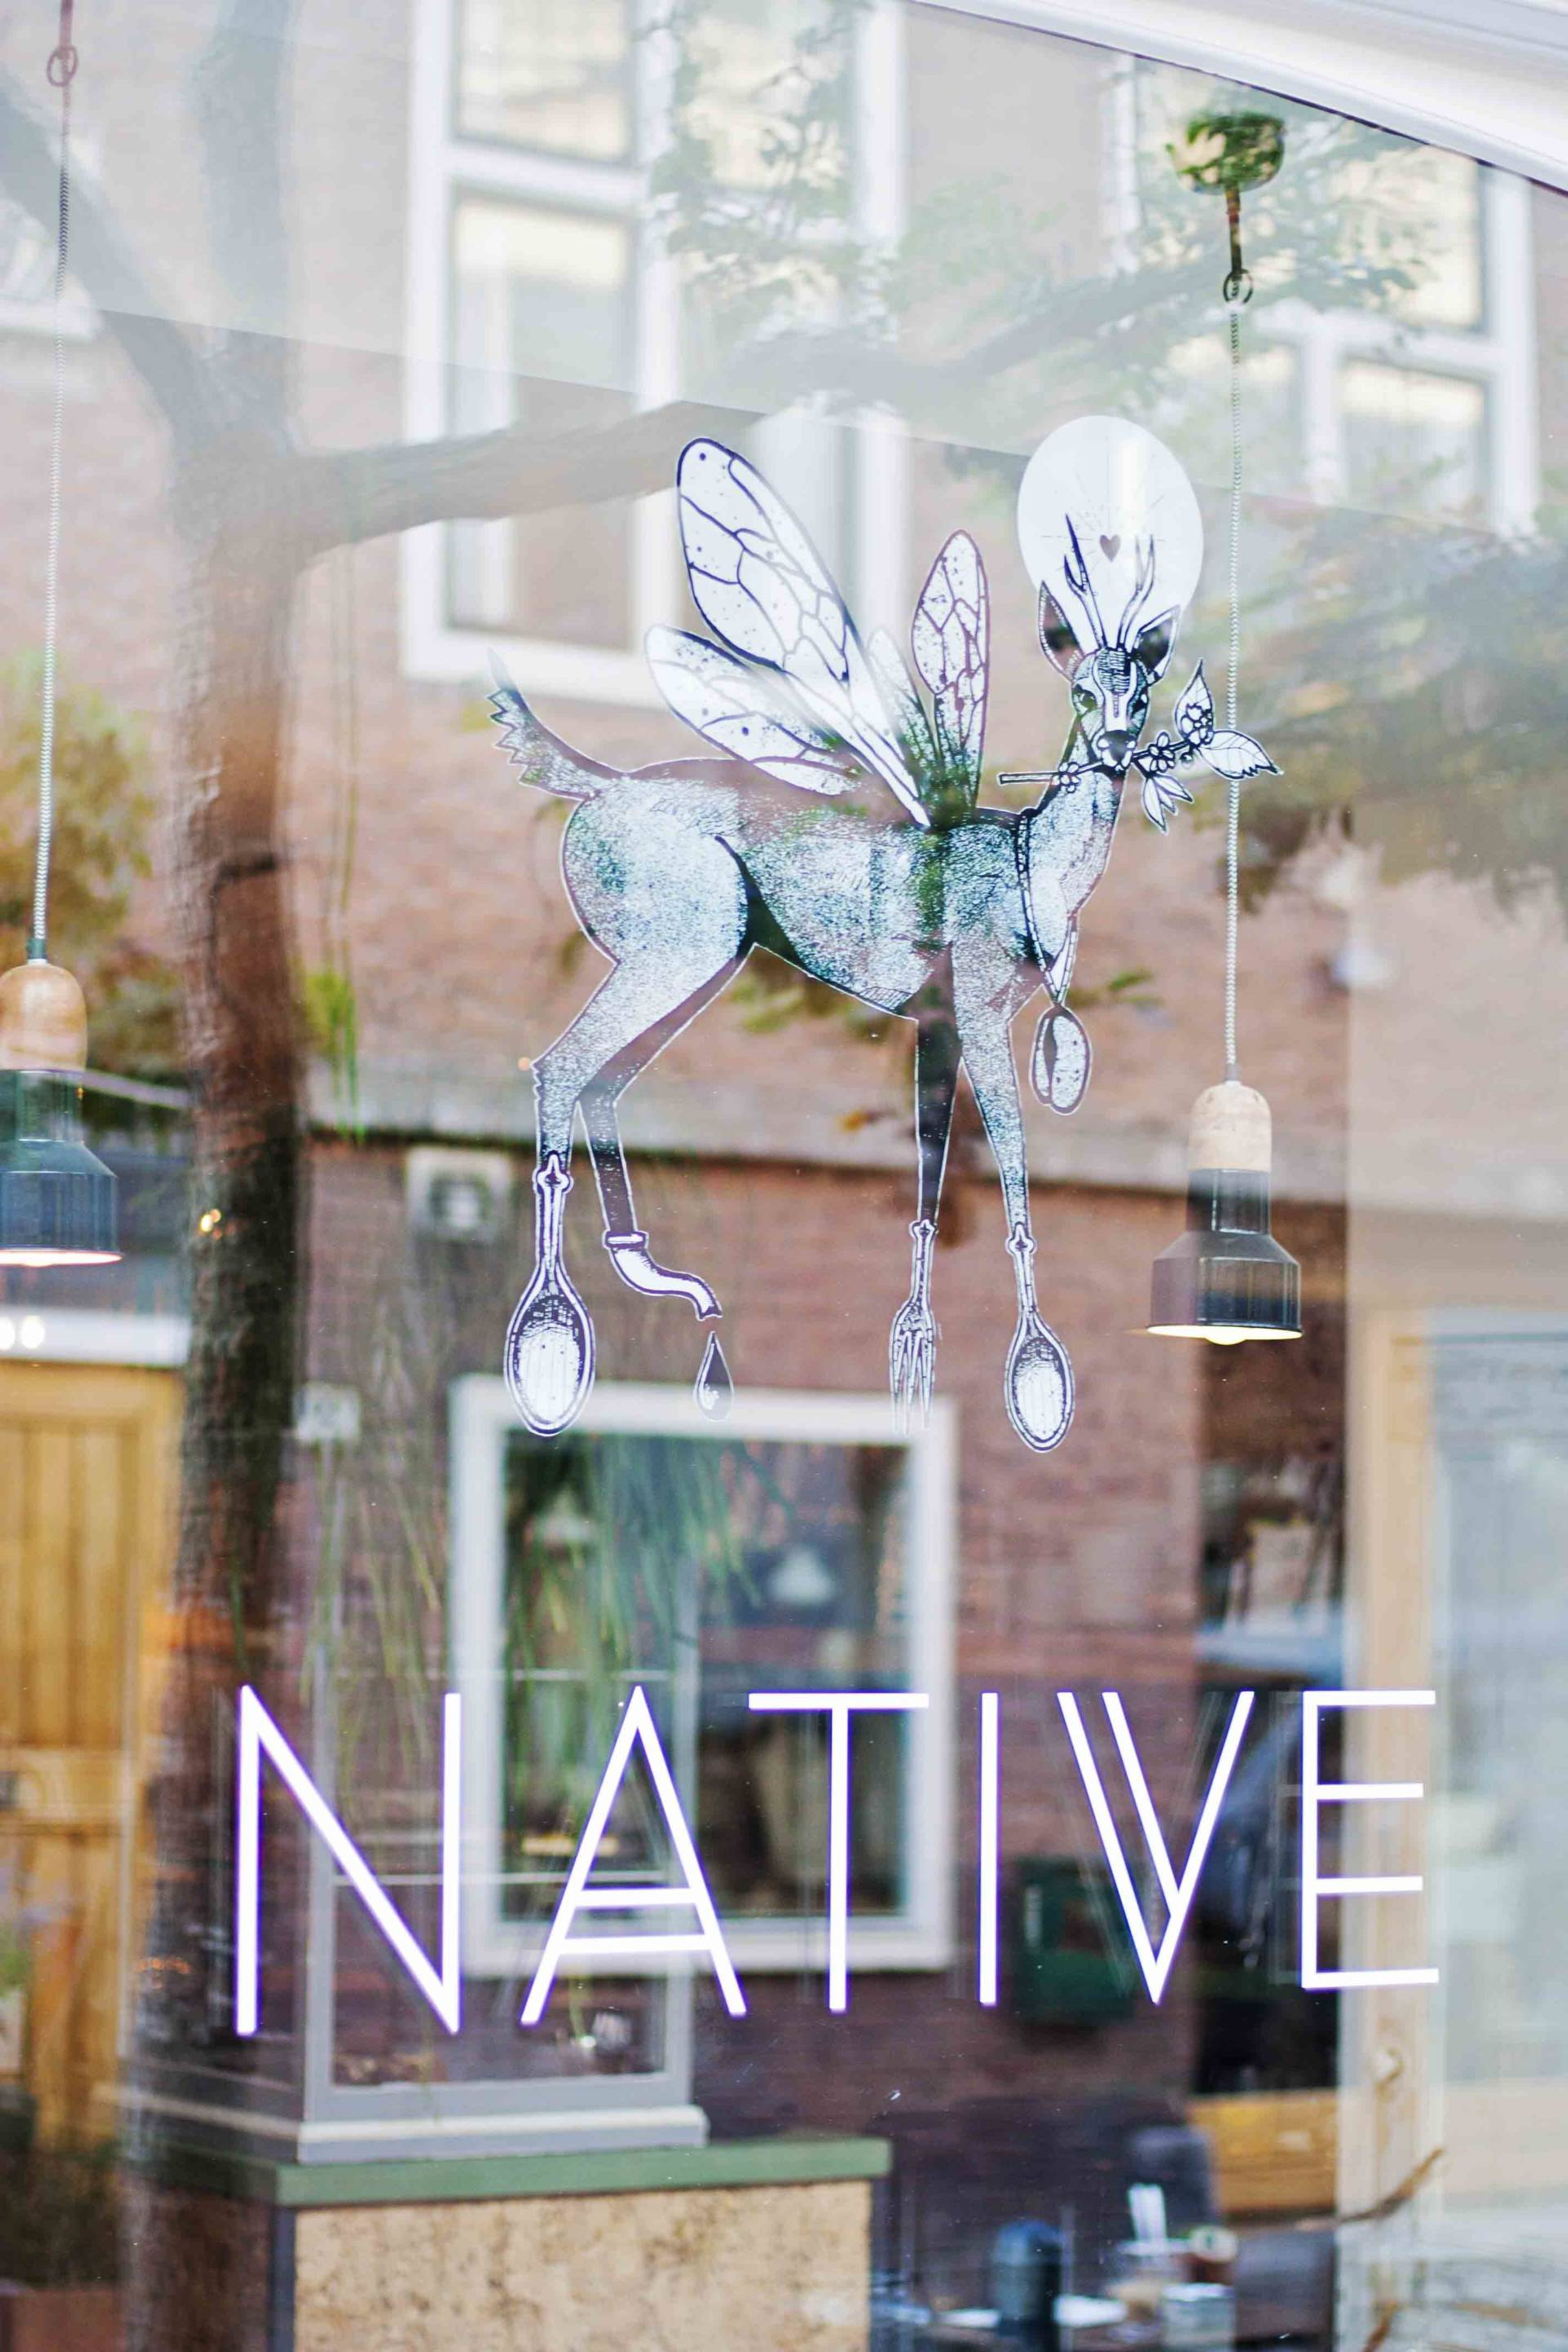 Native, Haarlem Styling: Esther Loonstijn